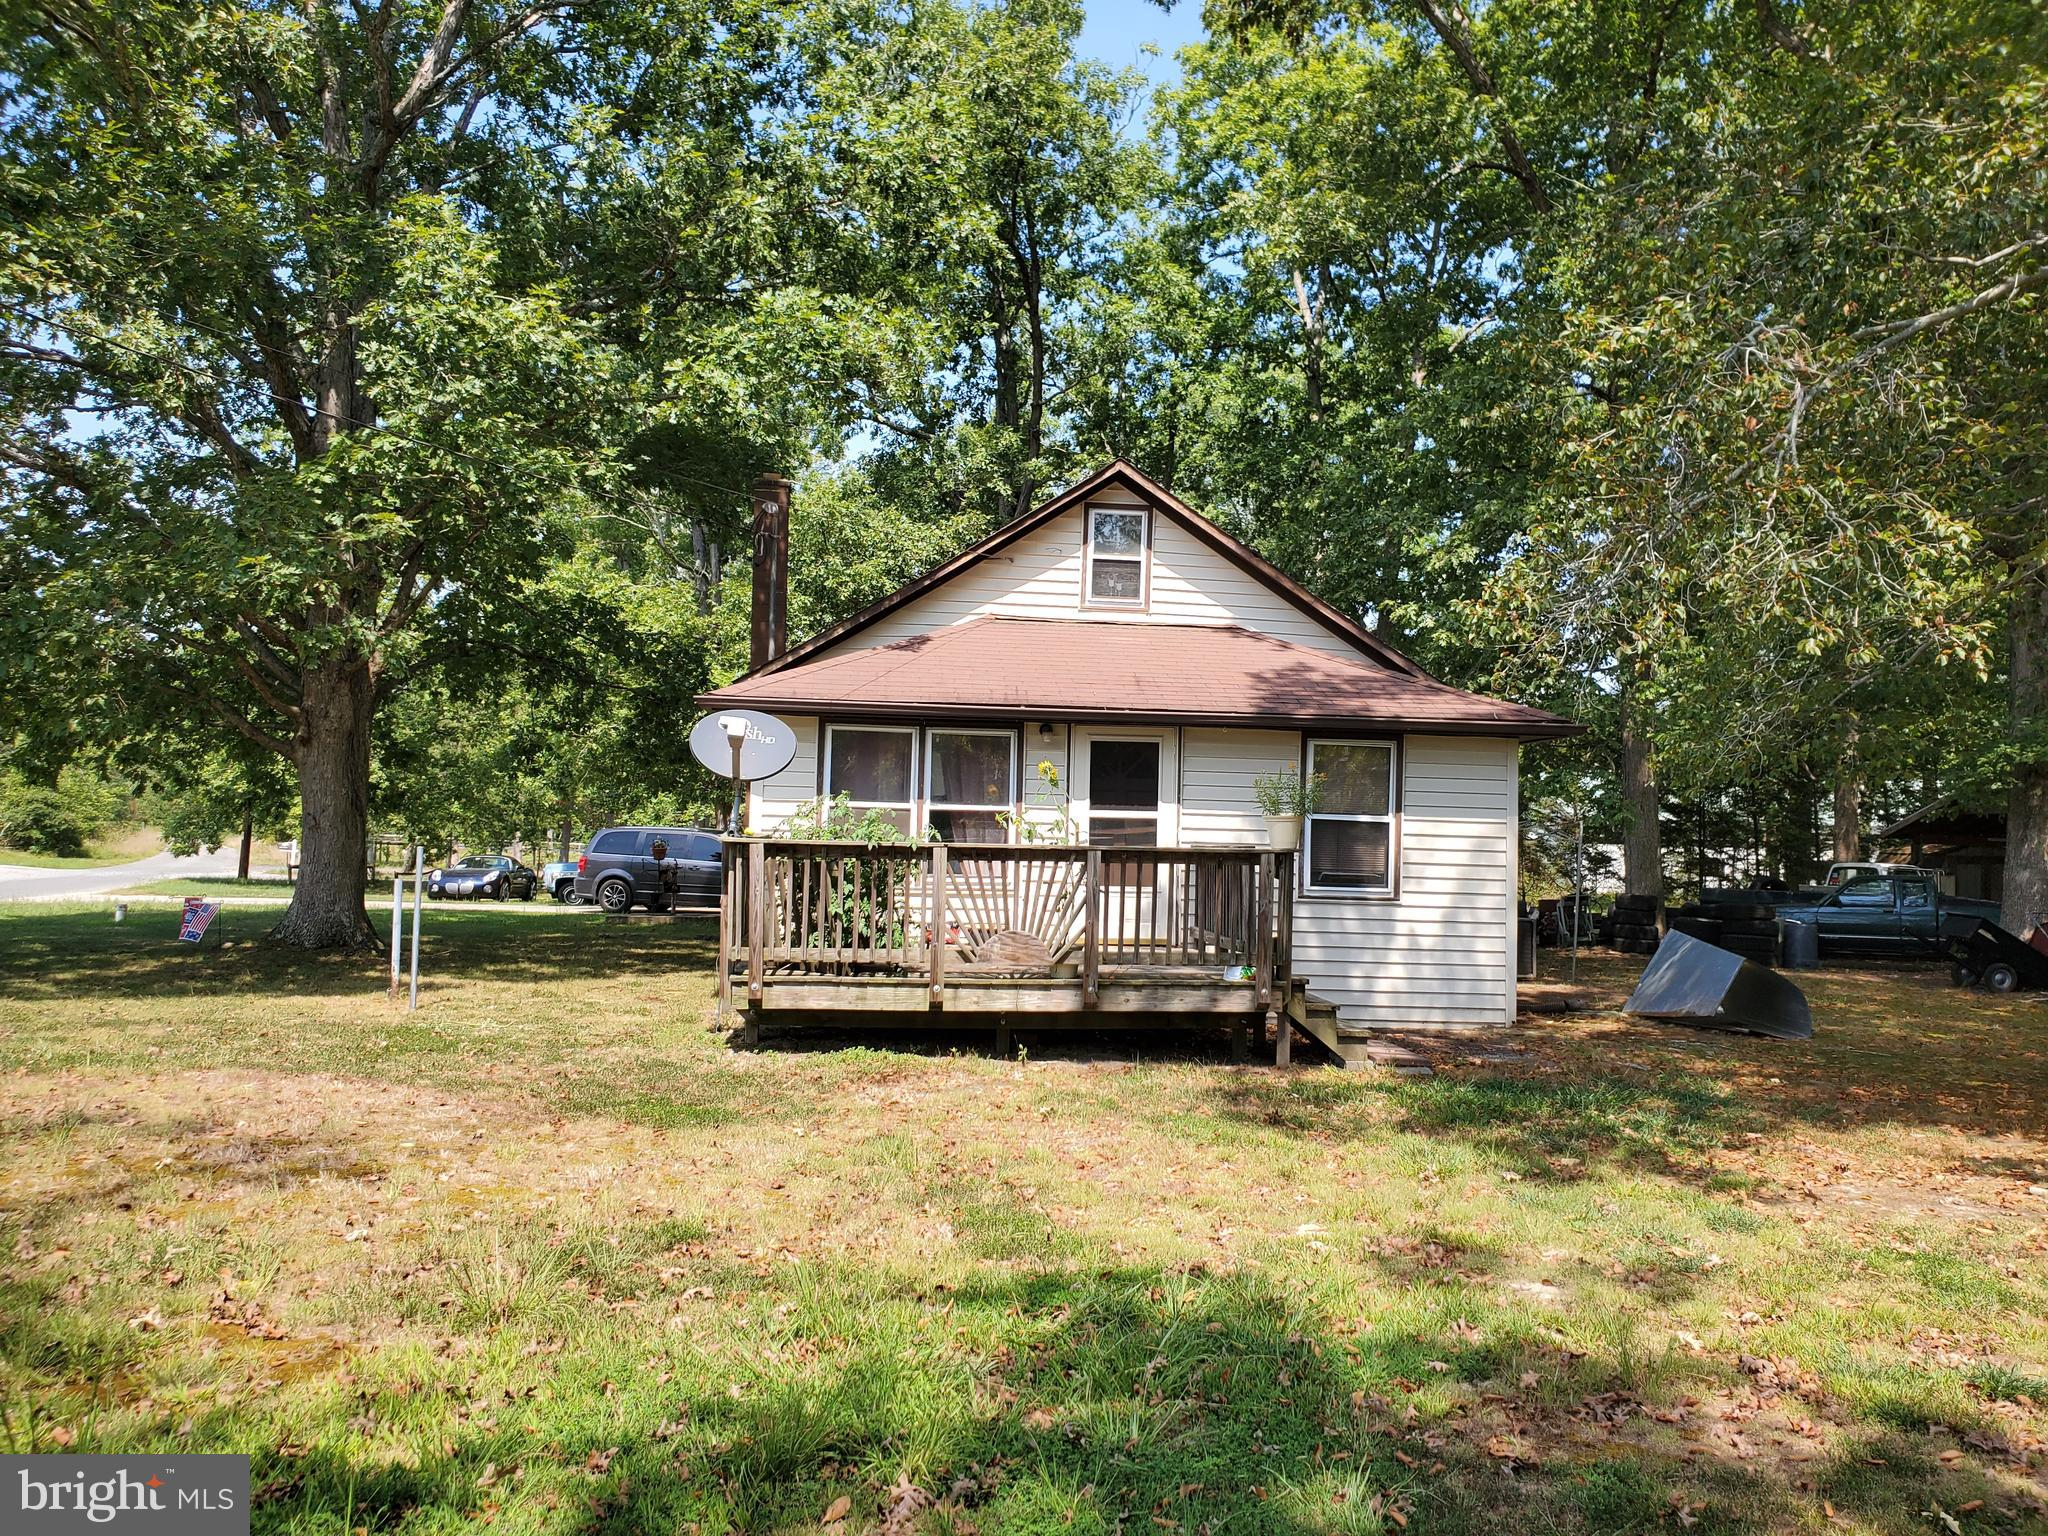 This quaint home was previously used for the share croppers. Plenty of room on the 1.16 acres to expand the house or build a new one! The garage is 24'x24' and can hold 6 cars stacked side by side. The garage is wired for an air compressor & for the generator for the house. (air compressor & generator do not convey) The driveway has been reinforced to be able to withstand the weight of a large pickup truck with a large enclosed trailer. Third party approval required.